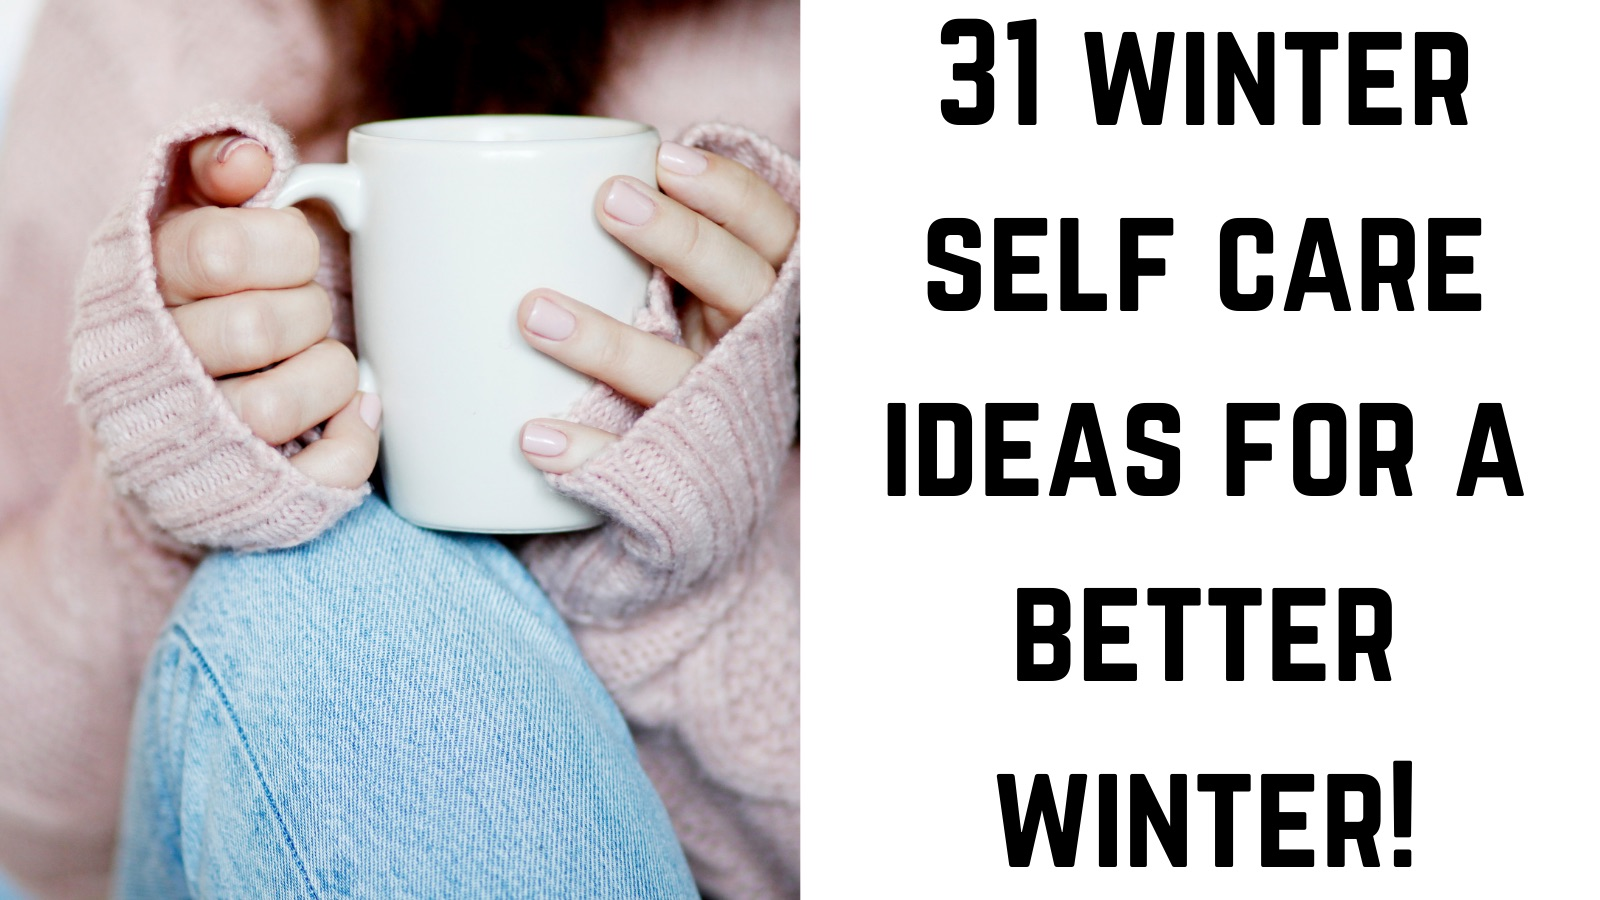 31 winter self care ideas for a better winter!